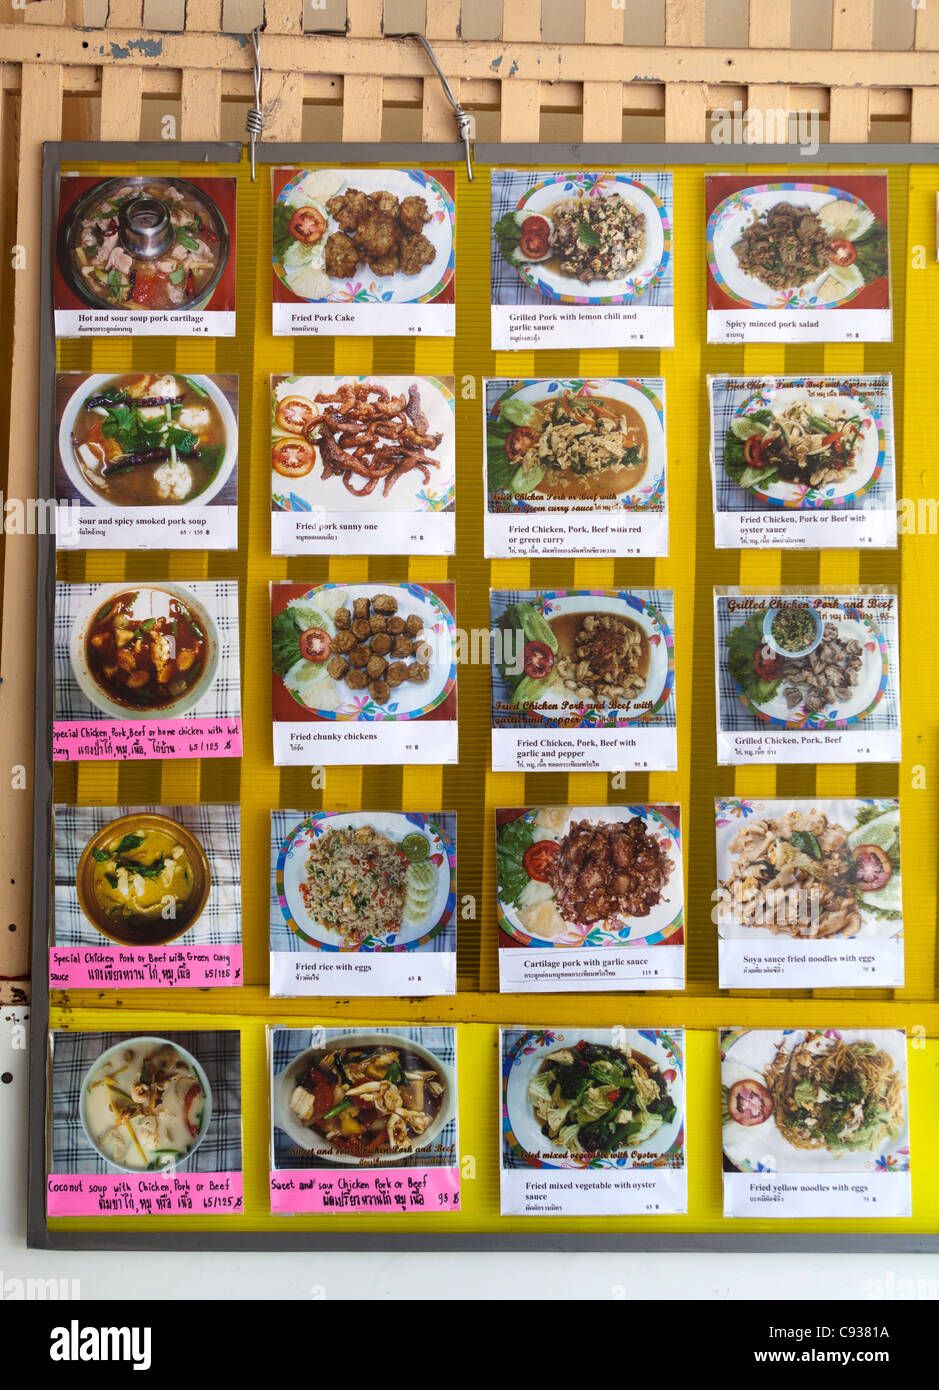 Restaurant Menu Image Board Hua Hin Thaïlande Photo Stock